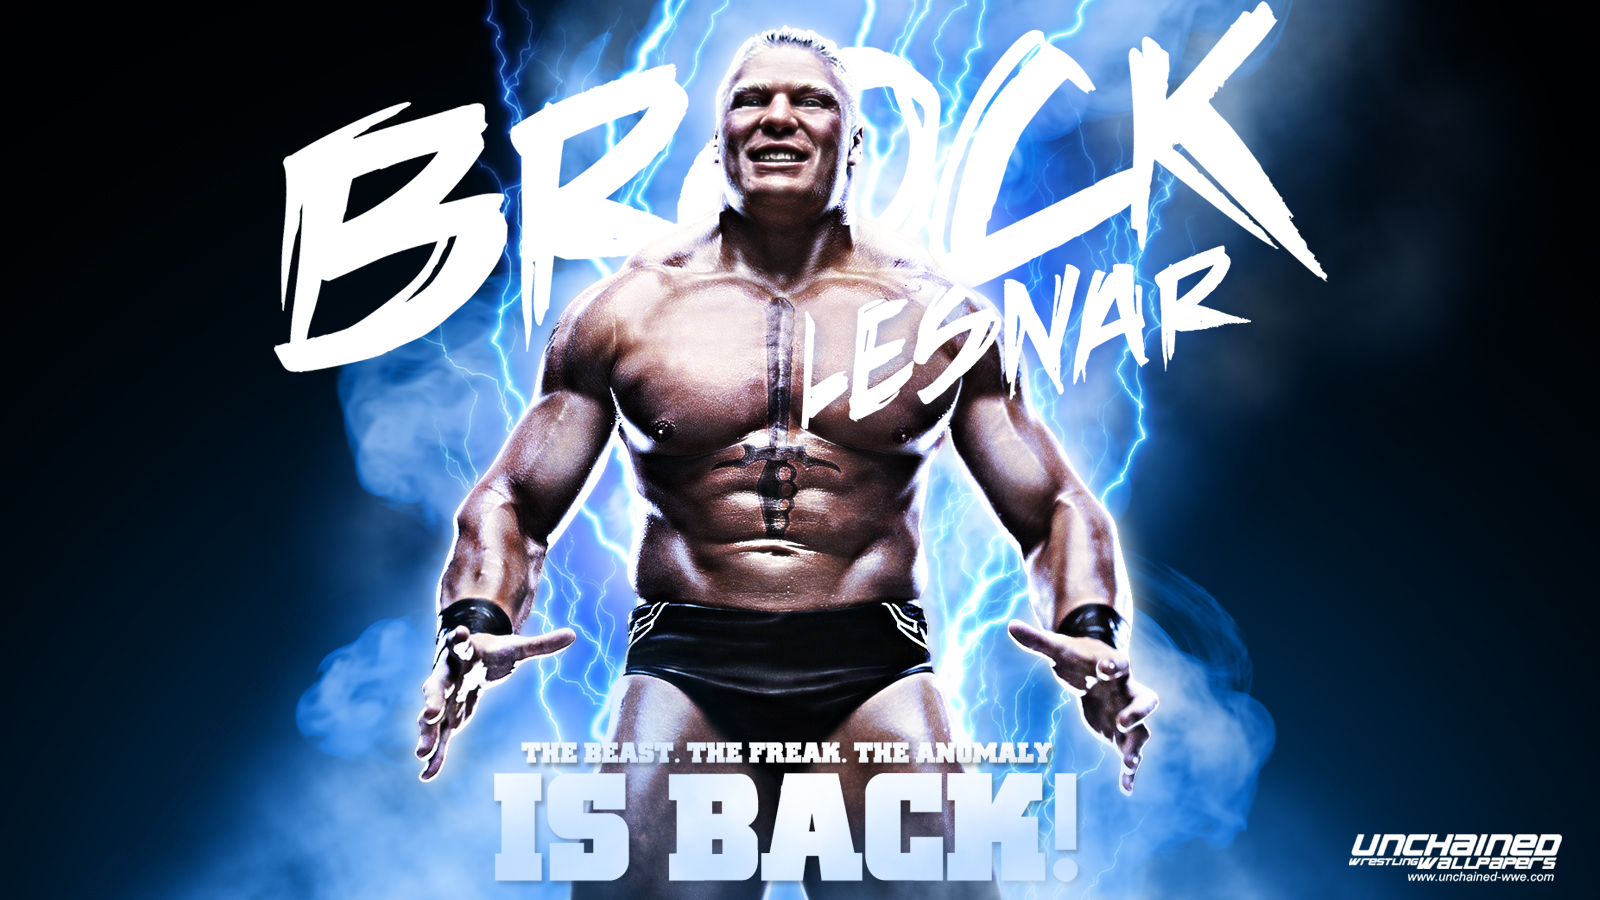 wwe images brock lesnar hd wallpaper and background photos 30399433